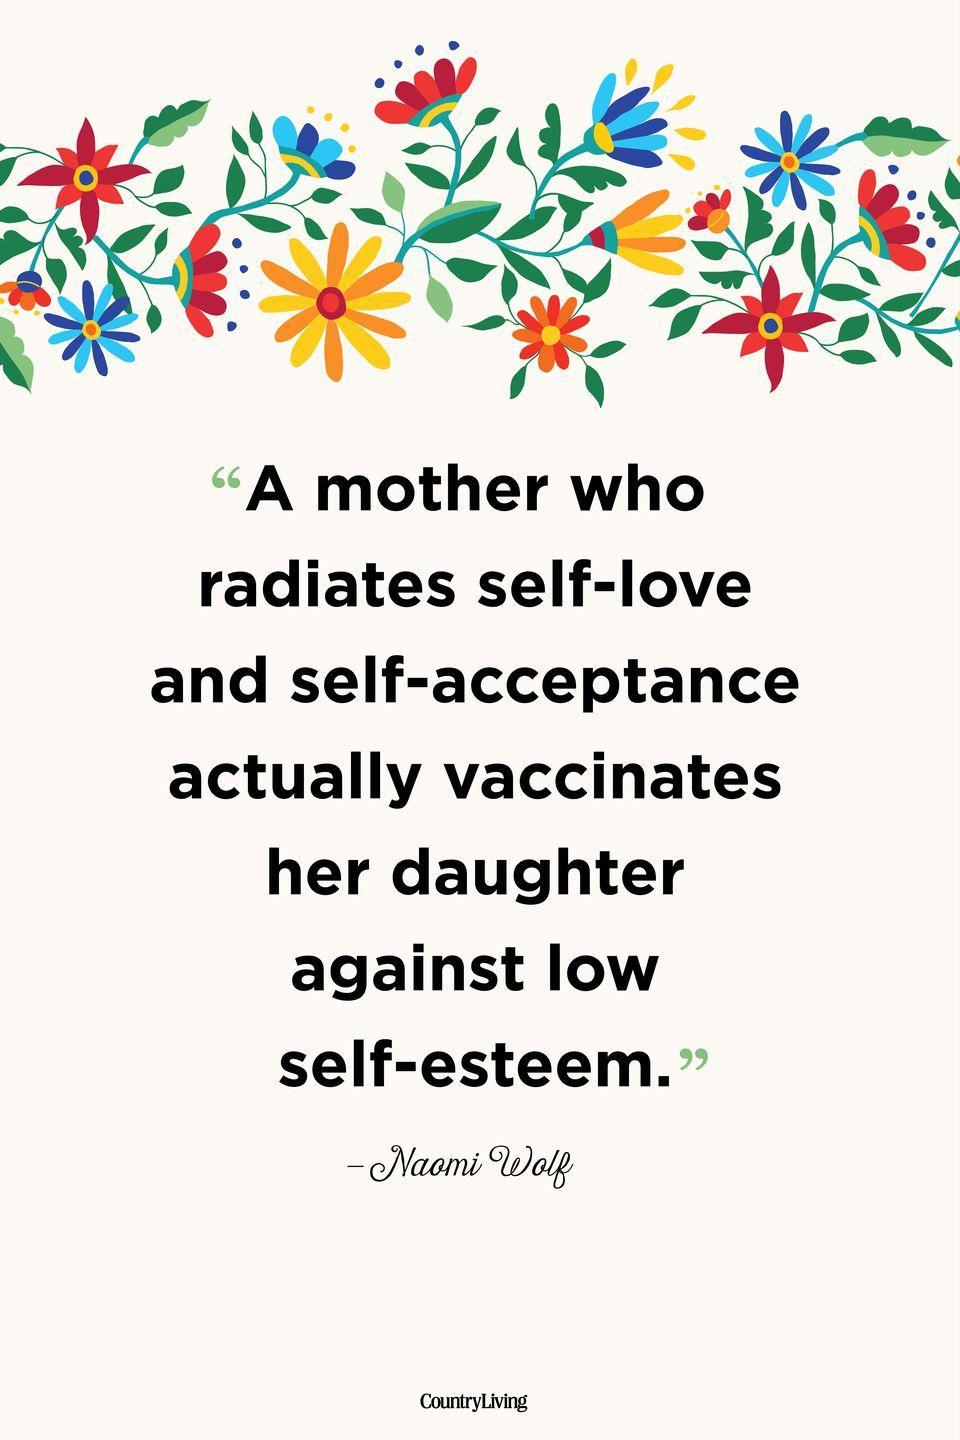 """<p>""""A mother who radiates self-love and self-acceptance actually vaccinates her daughter against low self-esteem.""""</p>"""